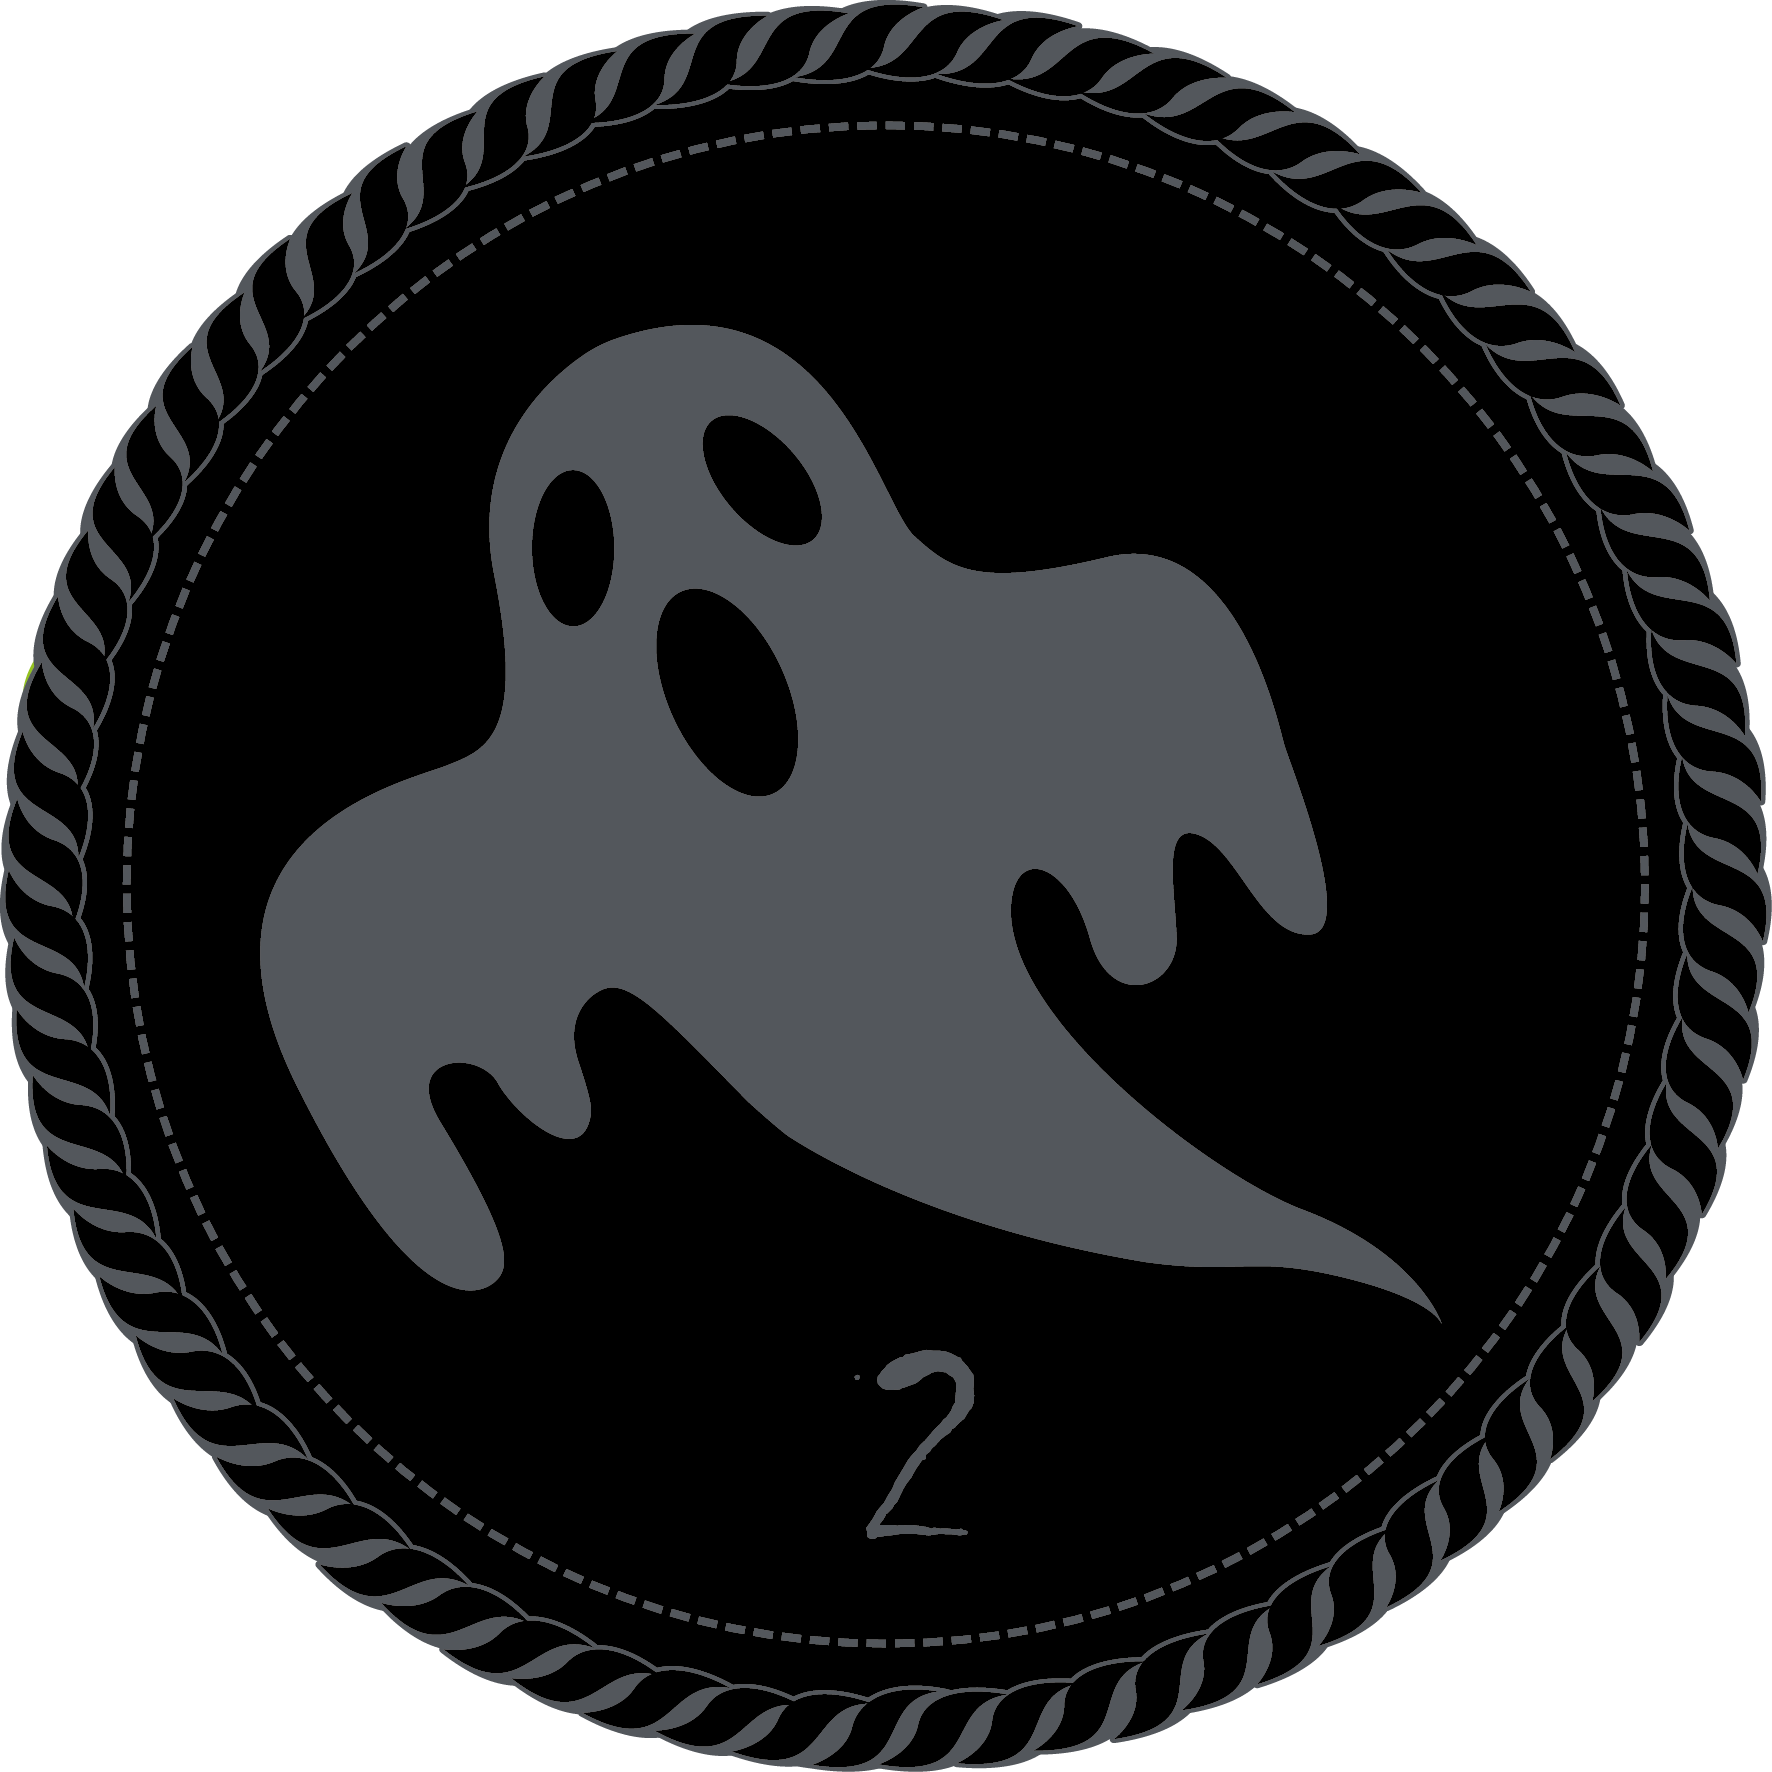 A black camp merit badge with a grey ghost and a numeral 2